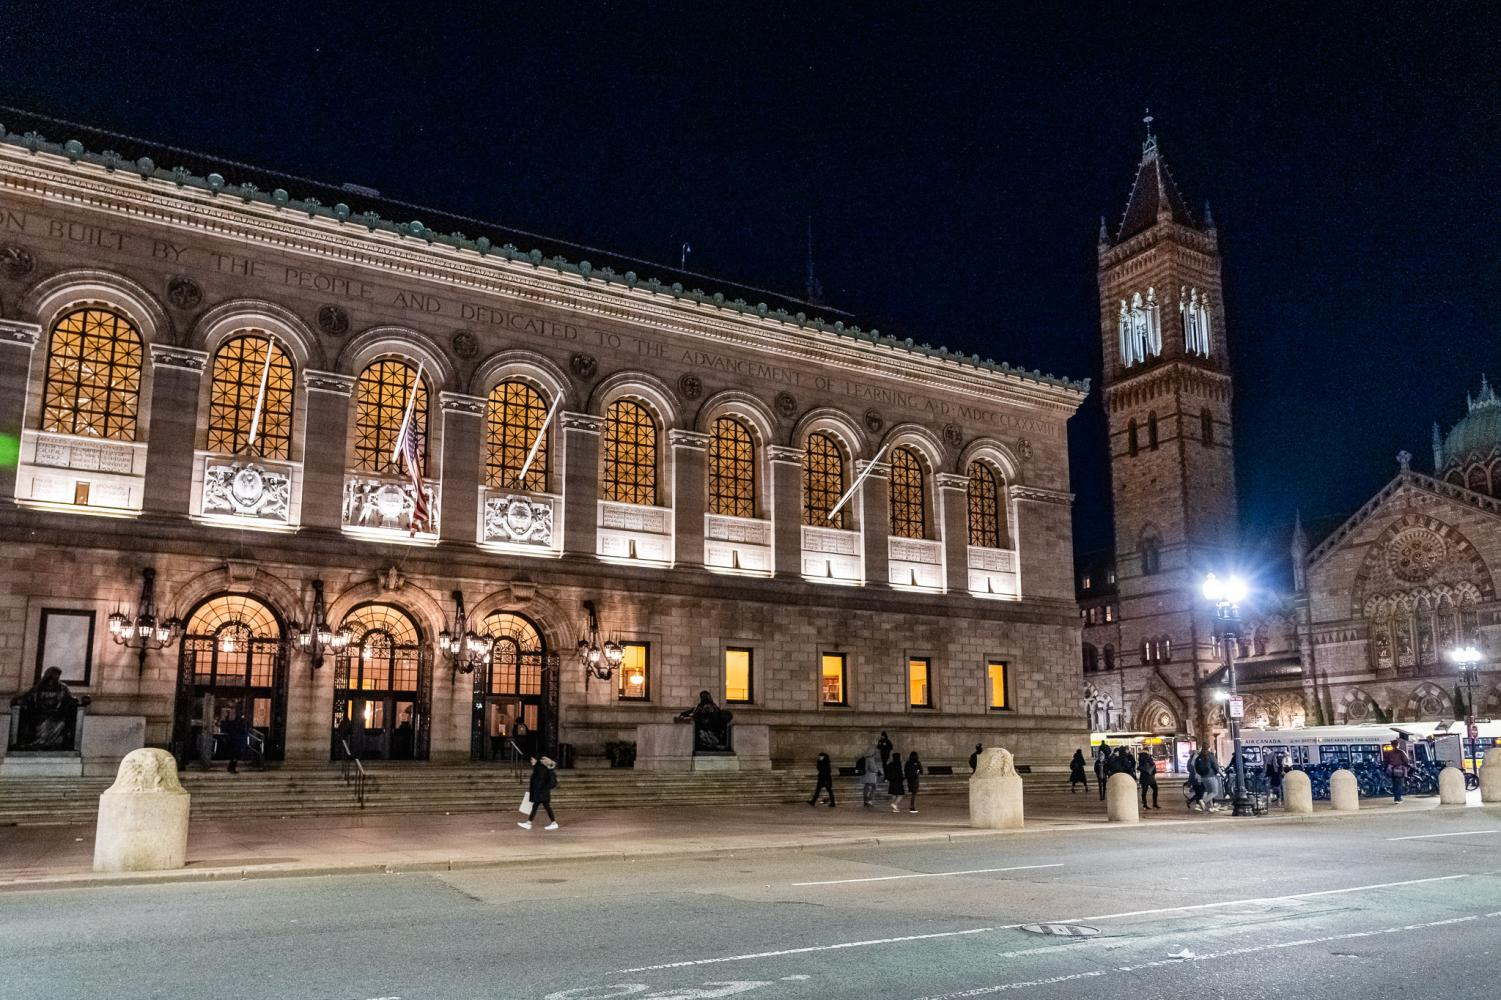 Boston Public Library, or BPL has eliminated fines for patrons under 18 years of age.